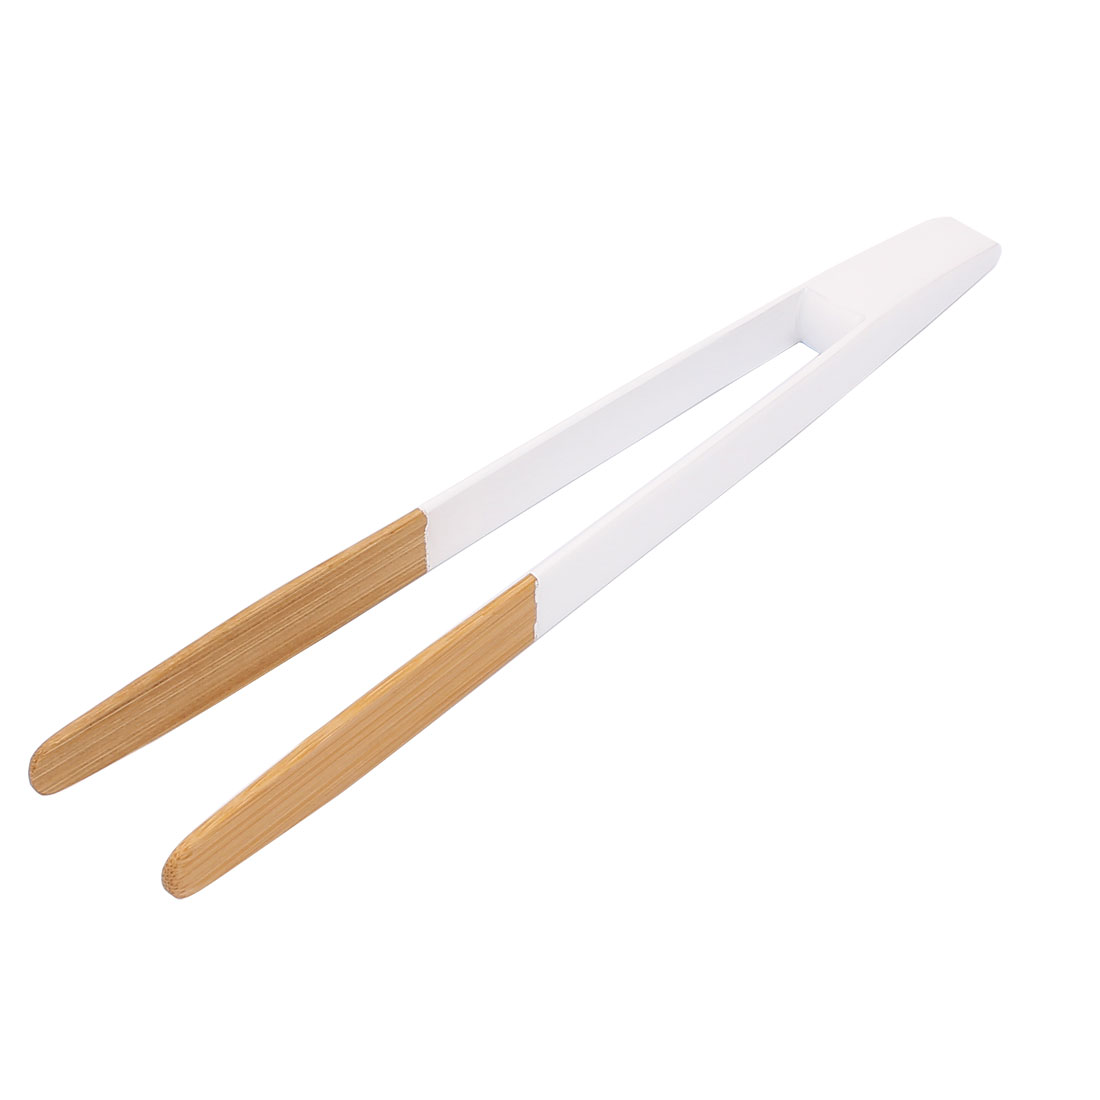 Home Restaurant Natural Bamboo Cake Tea Tong Tweezer Clamp White Beige